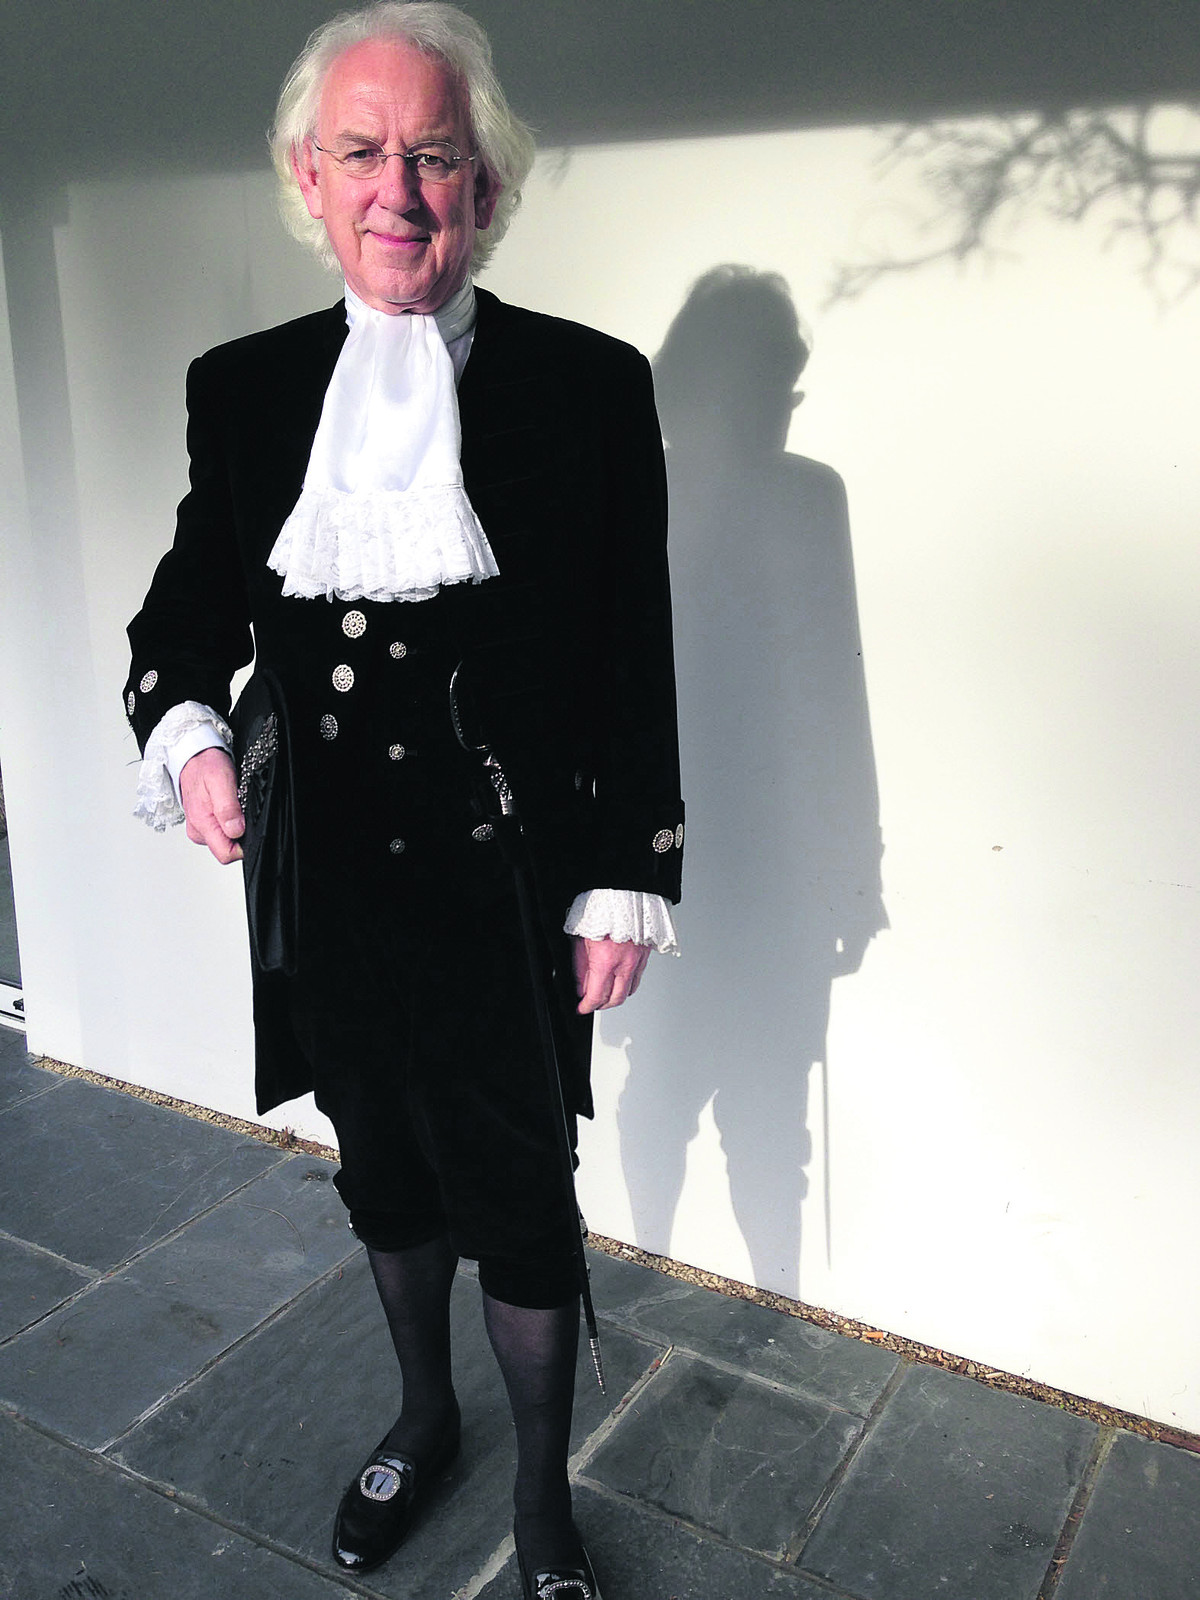 Tony Stratton,  who takes up  the position of  High Sheriff of  Oxfordshire next month